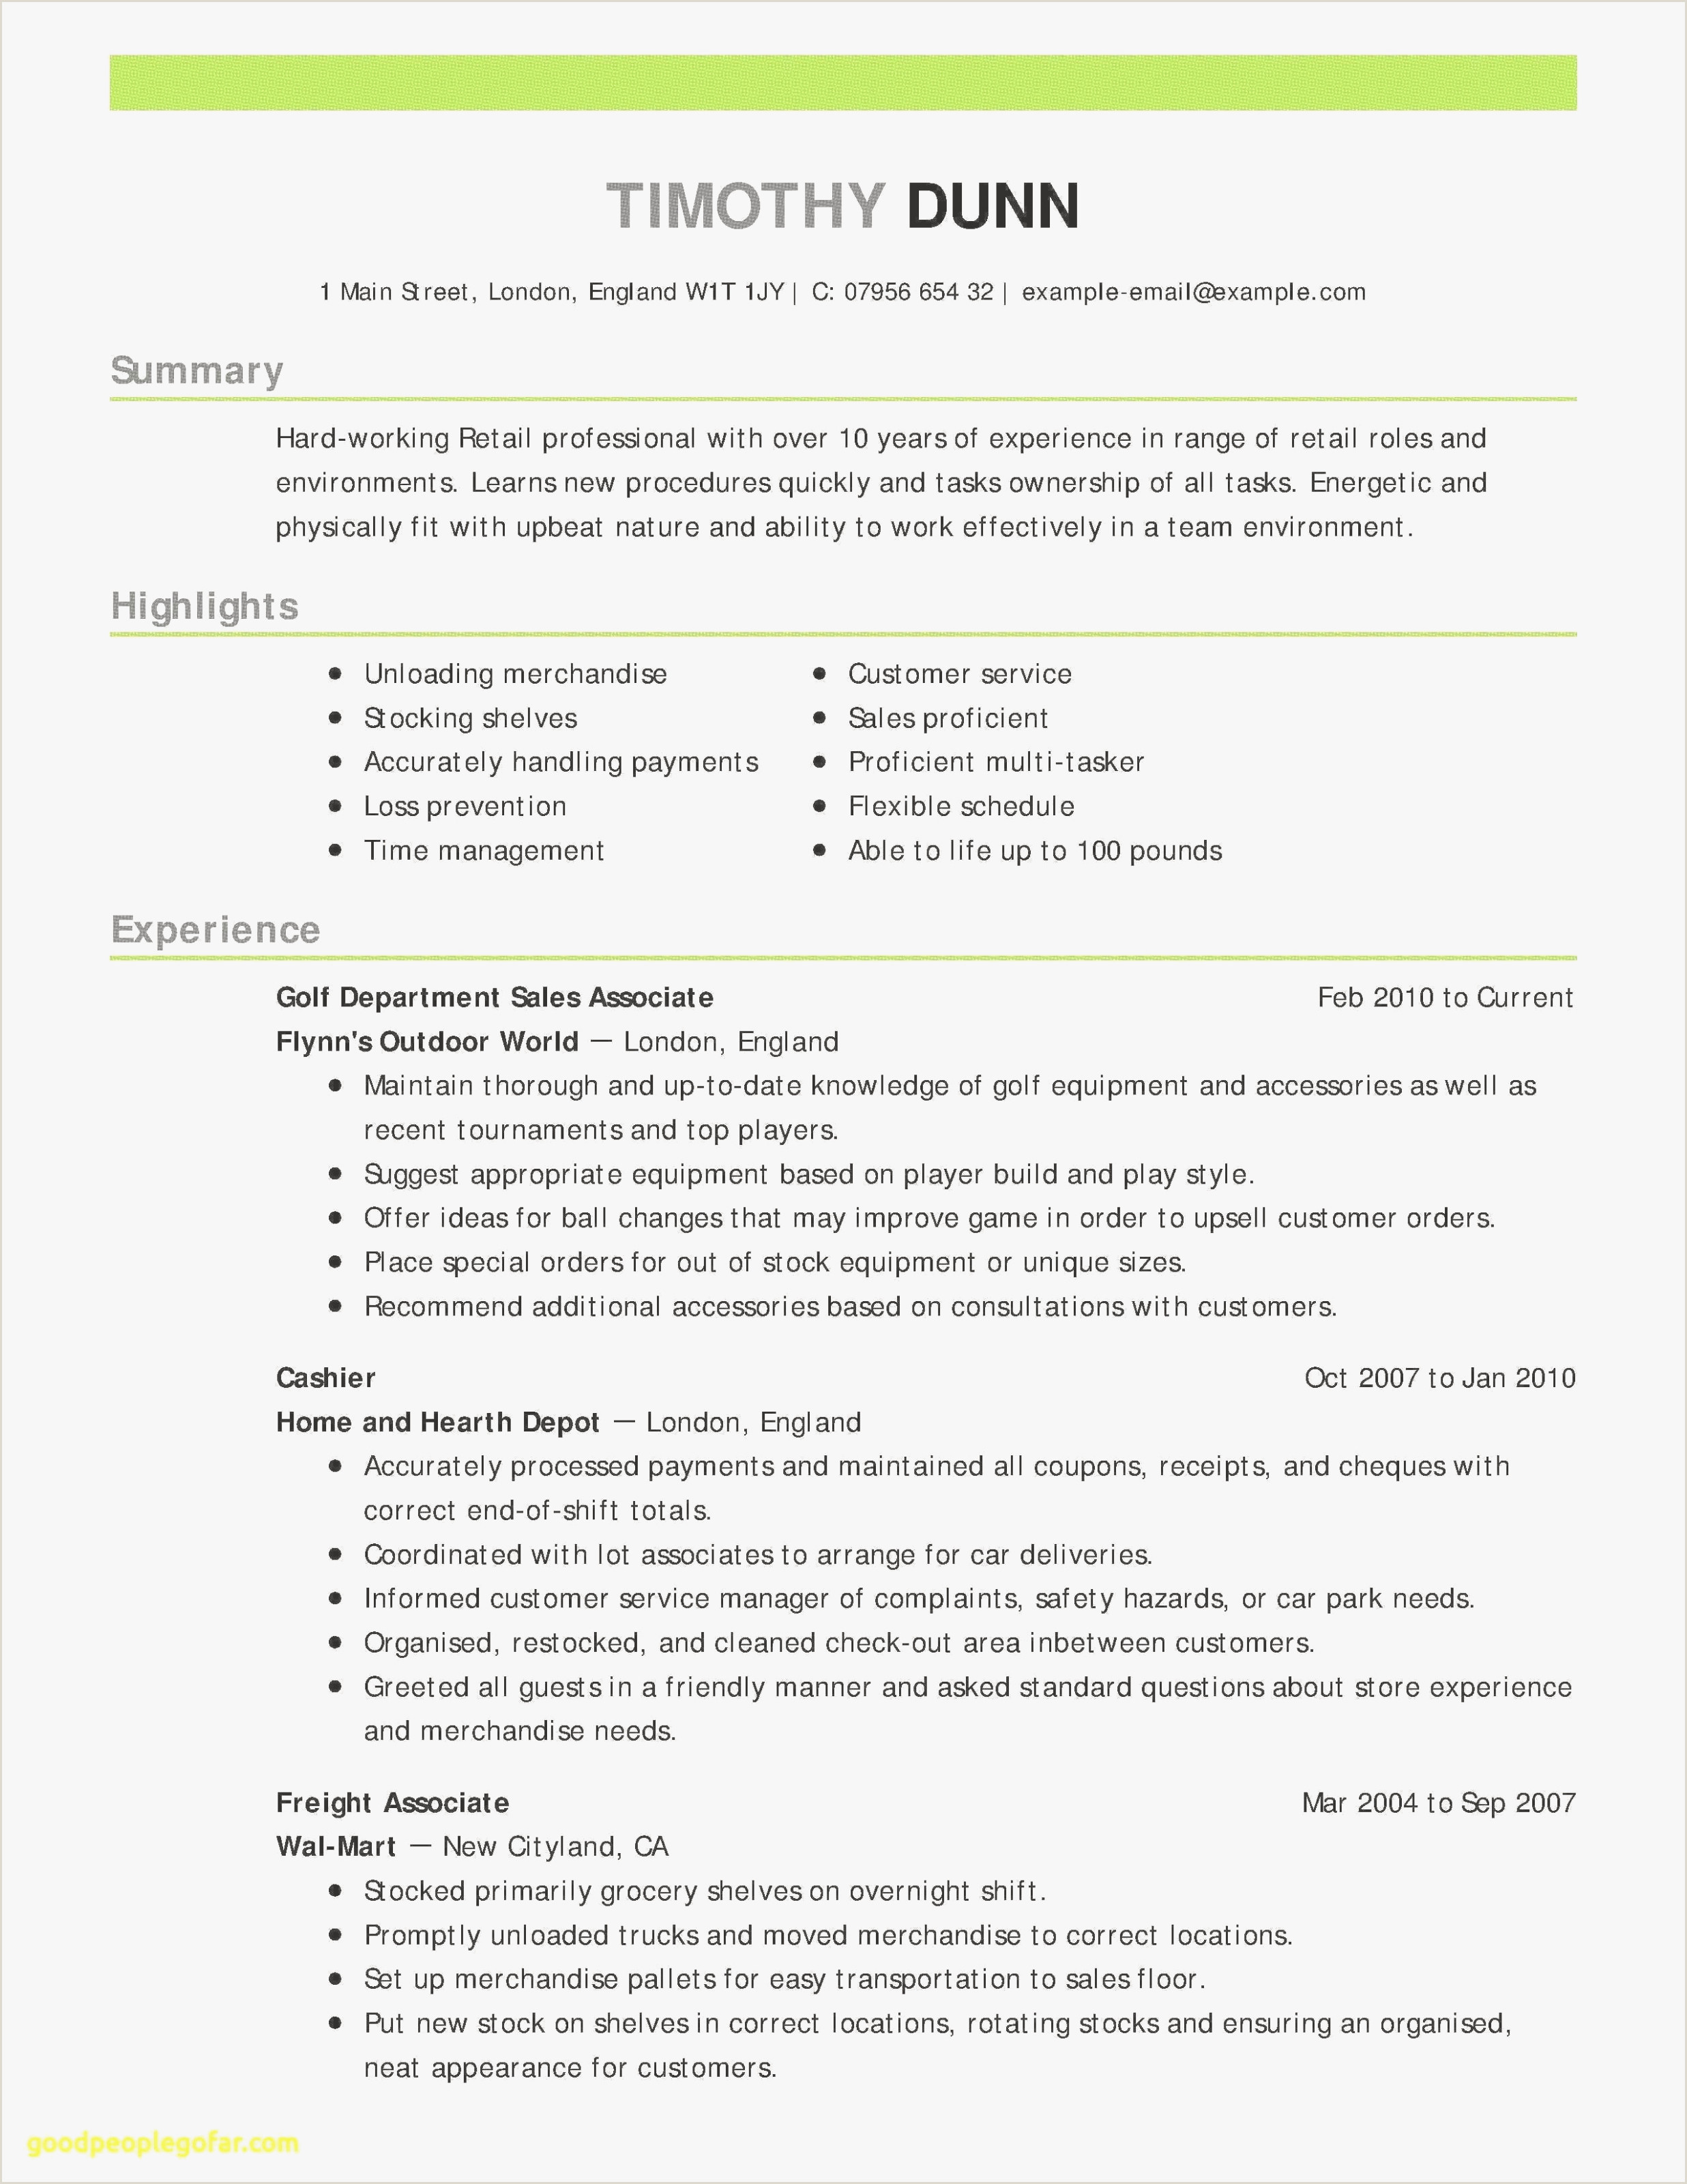 How to Put Restaurant Experience On A Resume Pr Resumes Examples Free Unique Skills to Put Resume Best